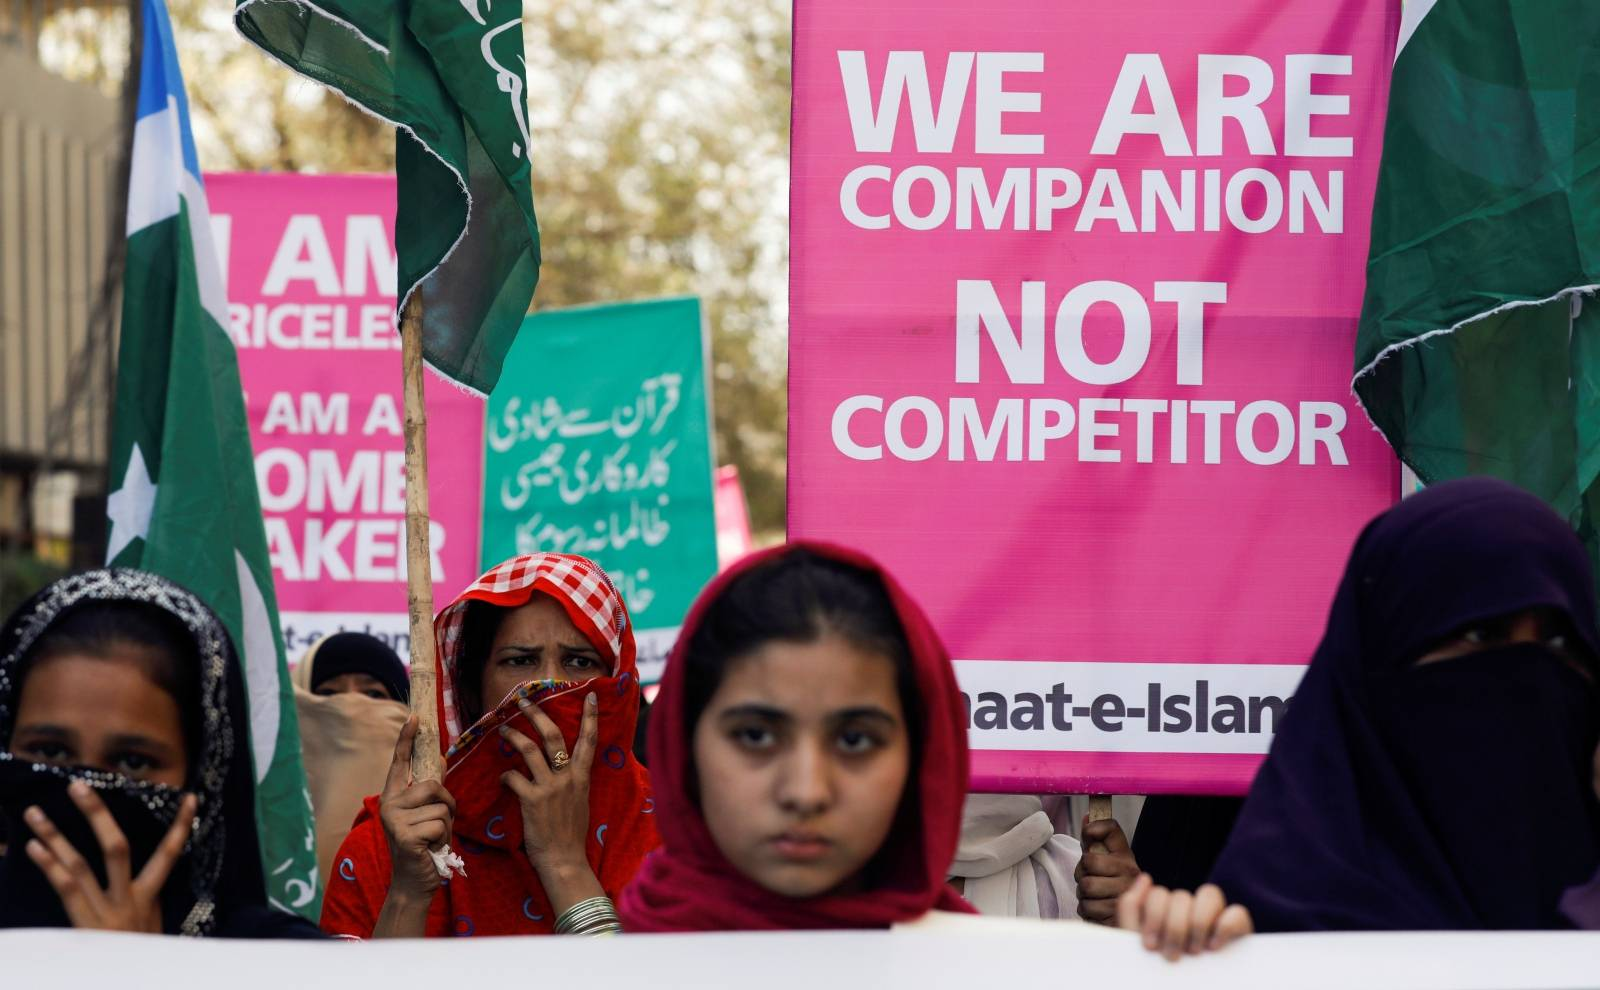 Women supporters of the religious and political party Jamaat-e-Islami (JI) hold signs as they take part in an Aurat March, or Women's March, in Karachi